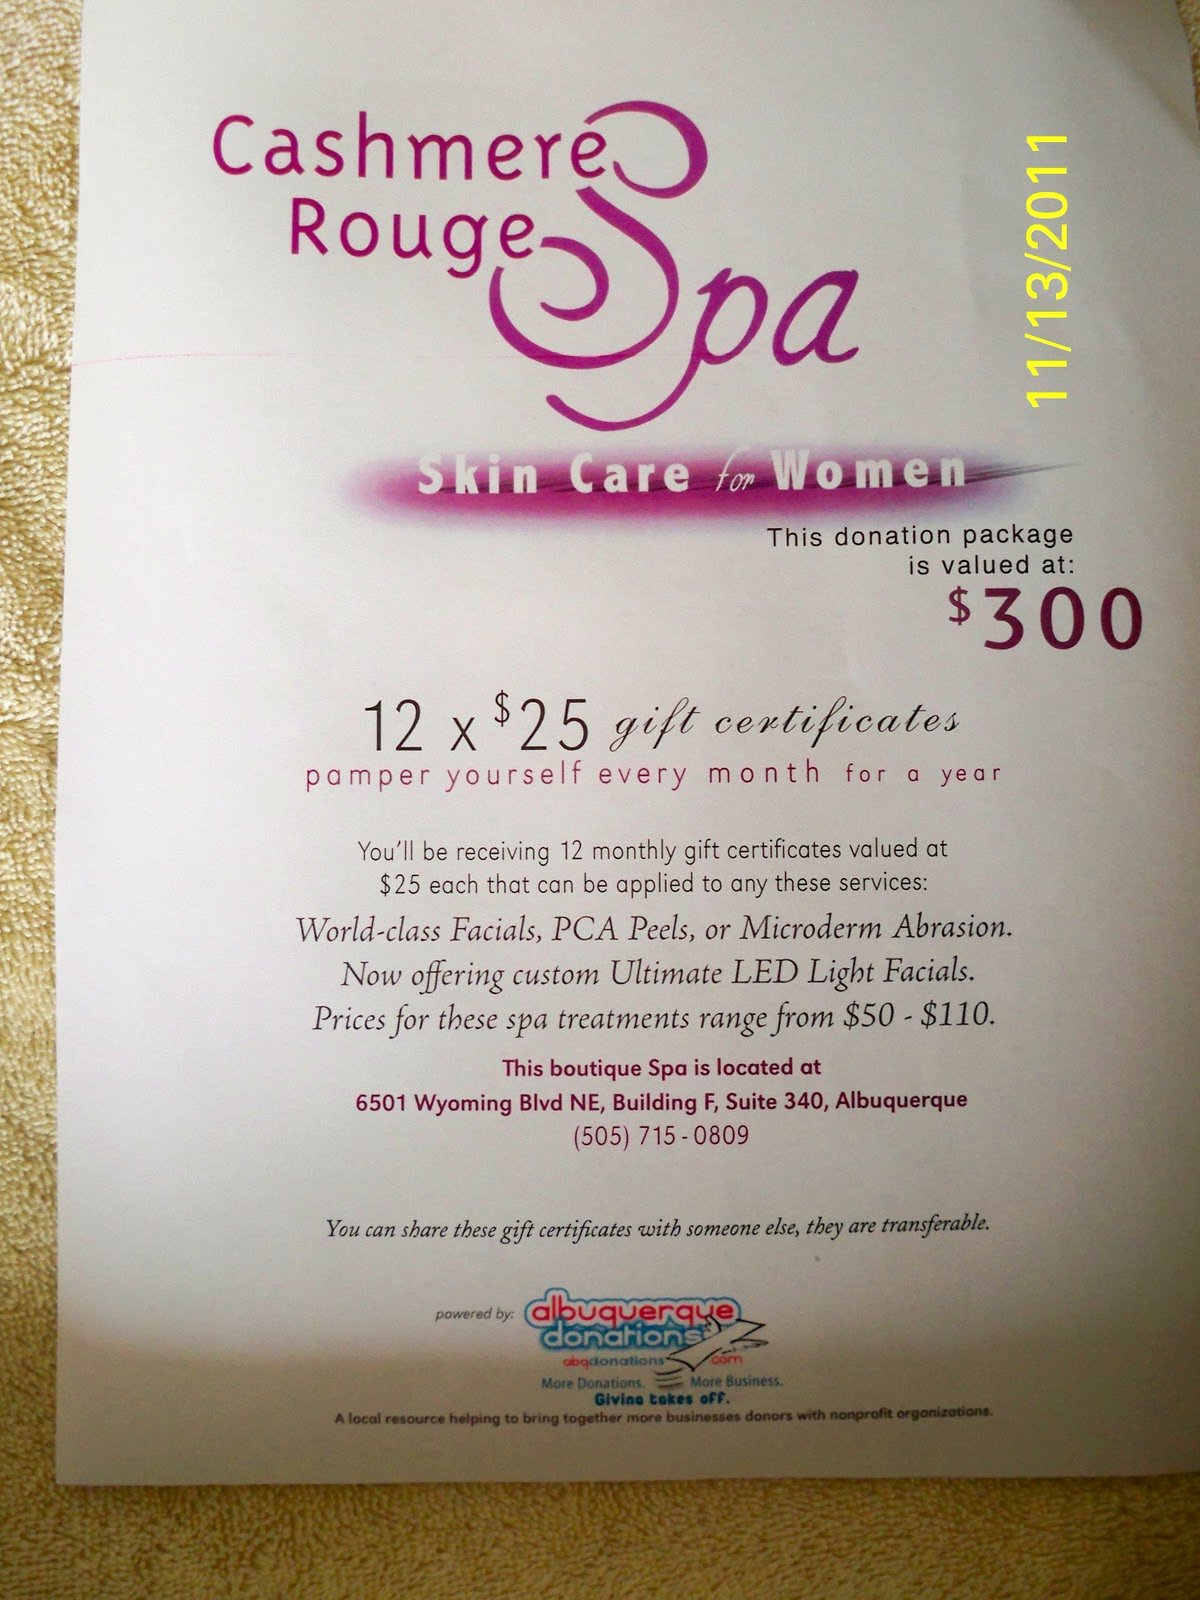 Silent Auction Gift Certificate Template Beautiful Relentless for A Cure Silent Auction Cashmere Rouge Spa $250 Gift Certificates